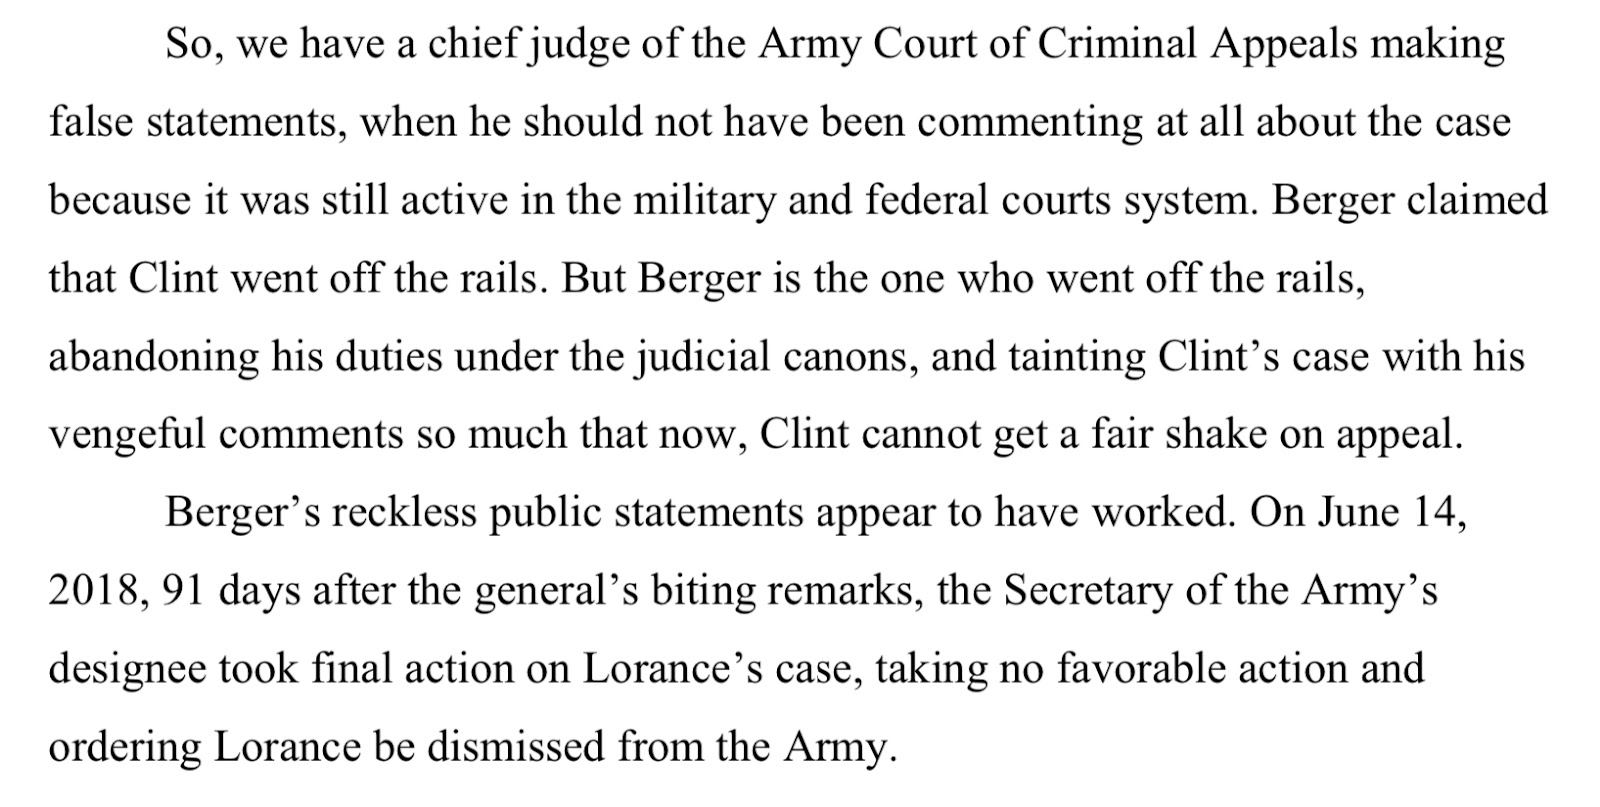 MUST READ: A Tragic Miscarriage of Justice for Army First Lieutenant Clint Lorance 5